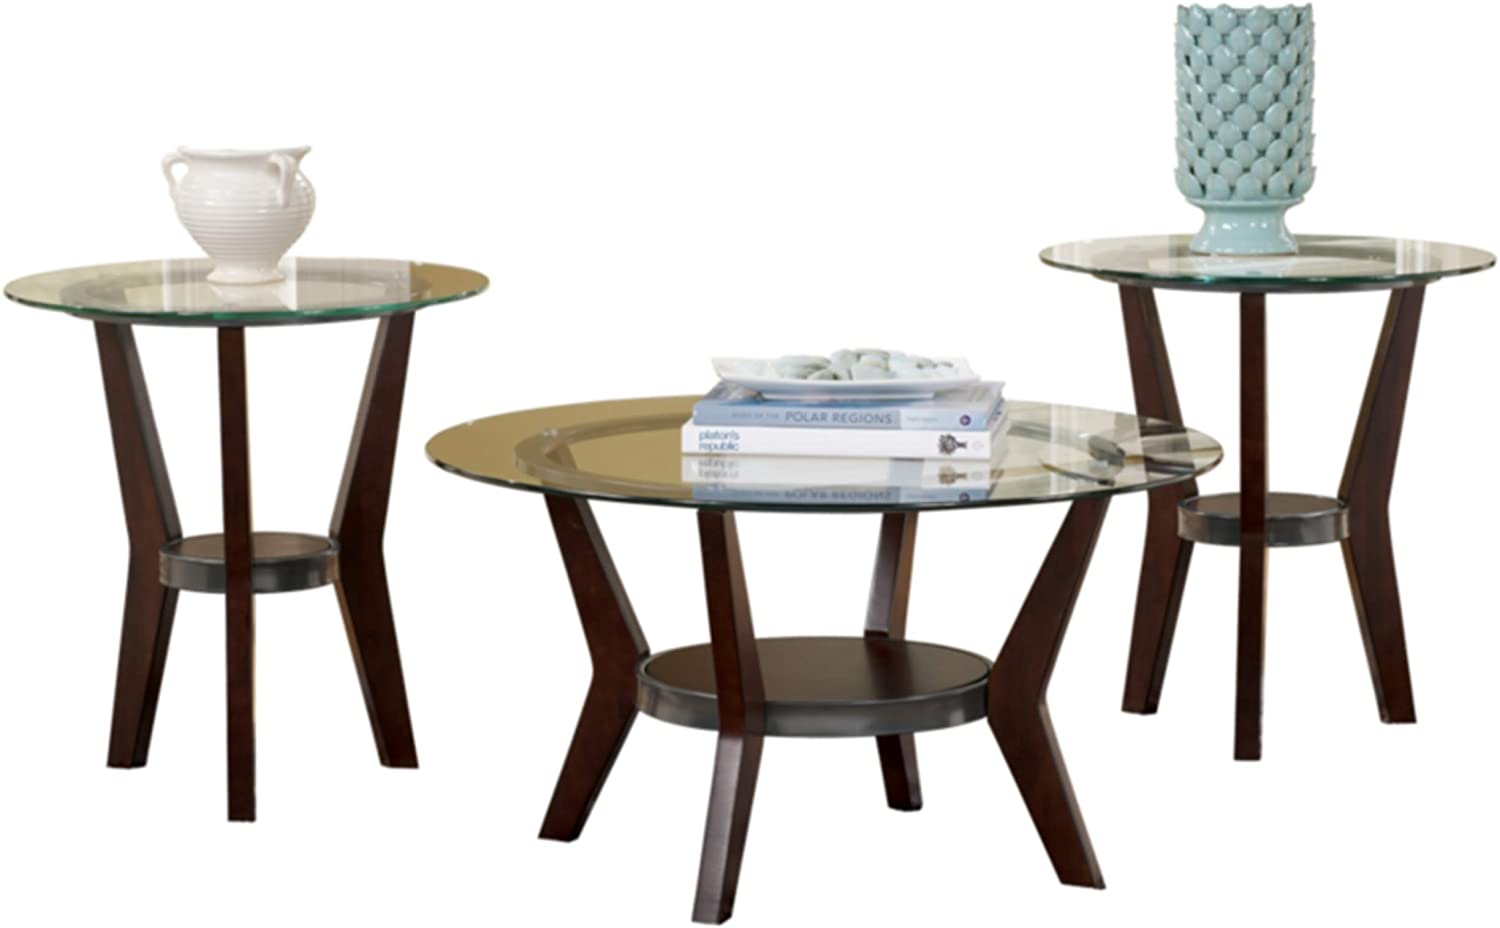 Amazon Com Signature Design By Ashley Fantell Circular Glass Top Occasional Table Set Includes Cocktail Table 2 End Tables Dark Brown Furniture Decor